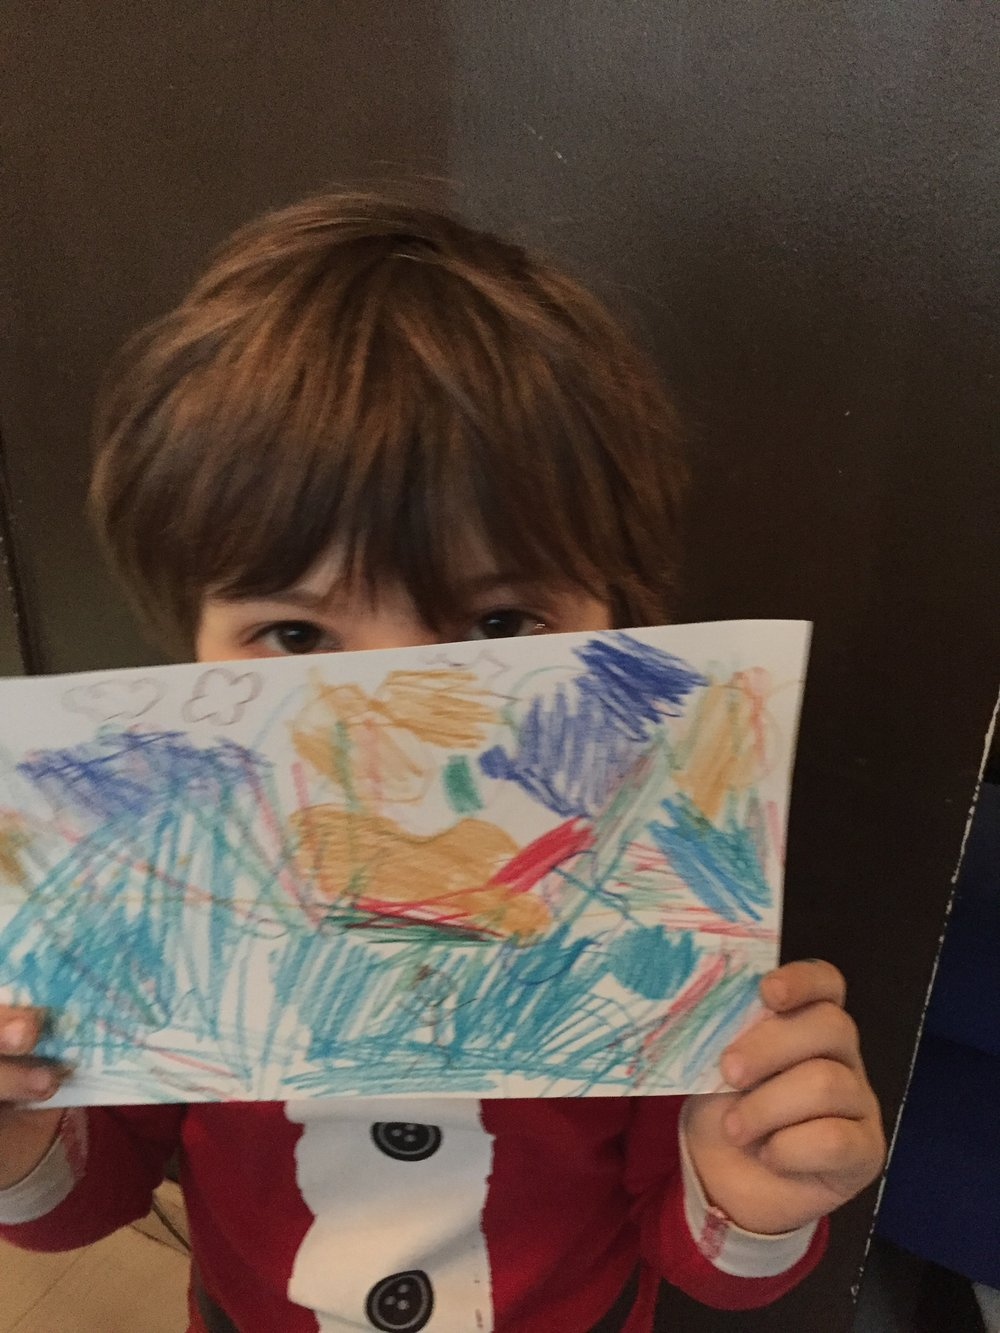 Lyric's finished product. Note him camouflaged within the picture!